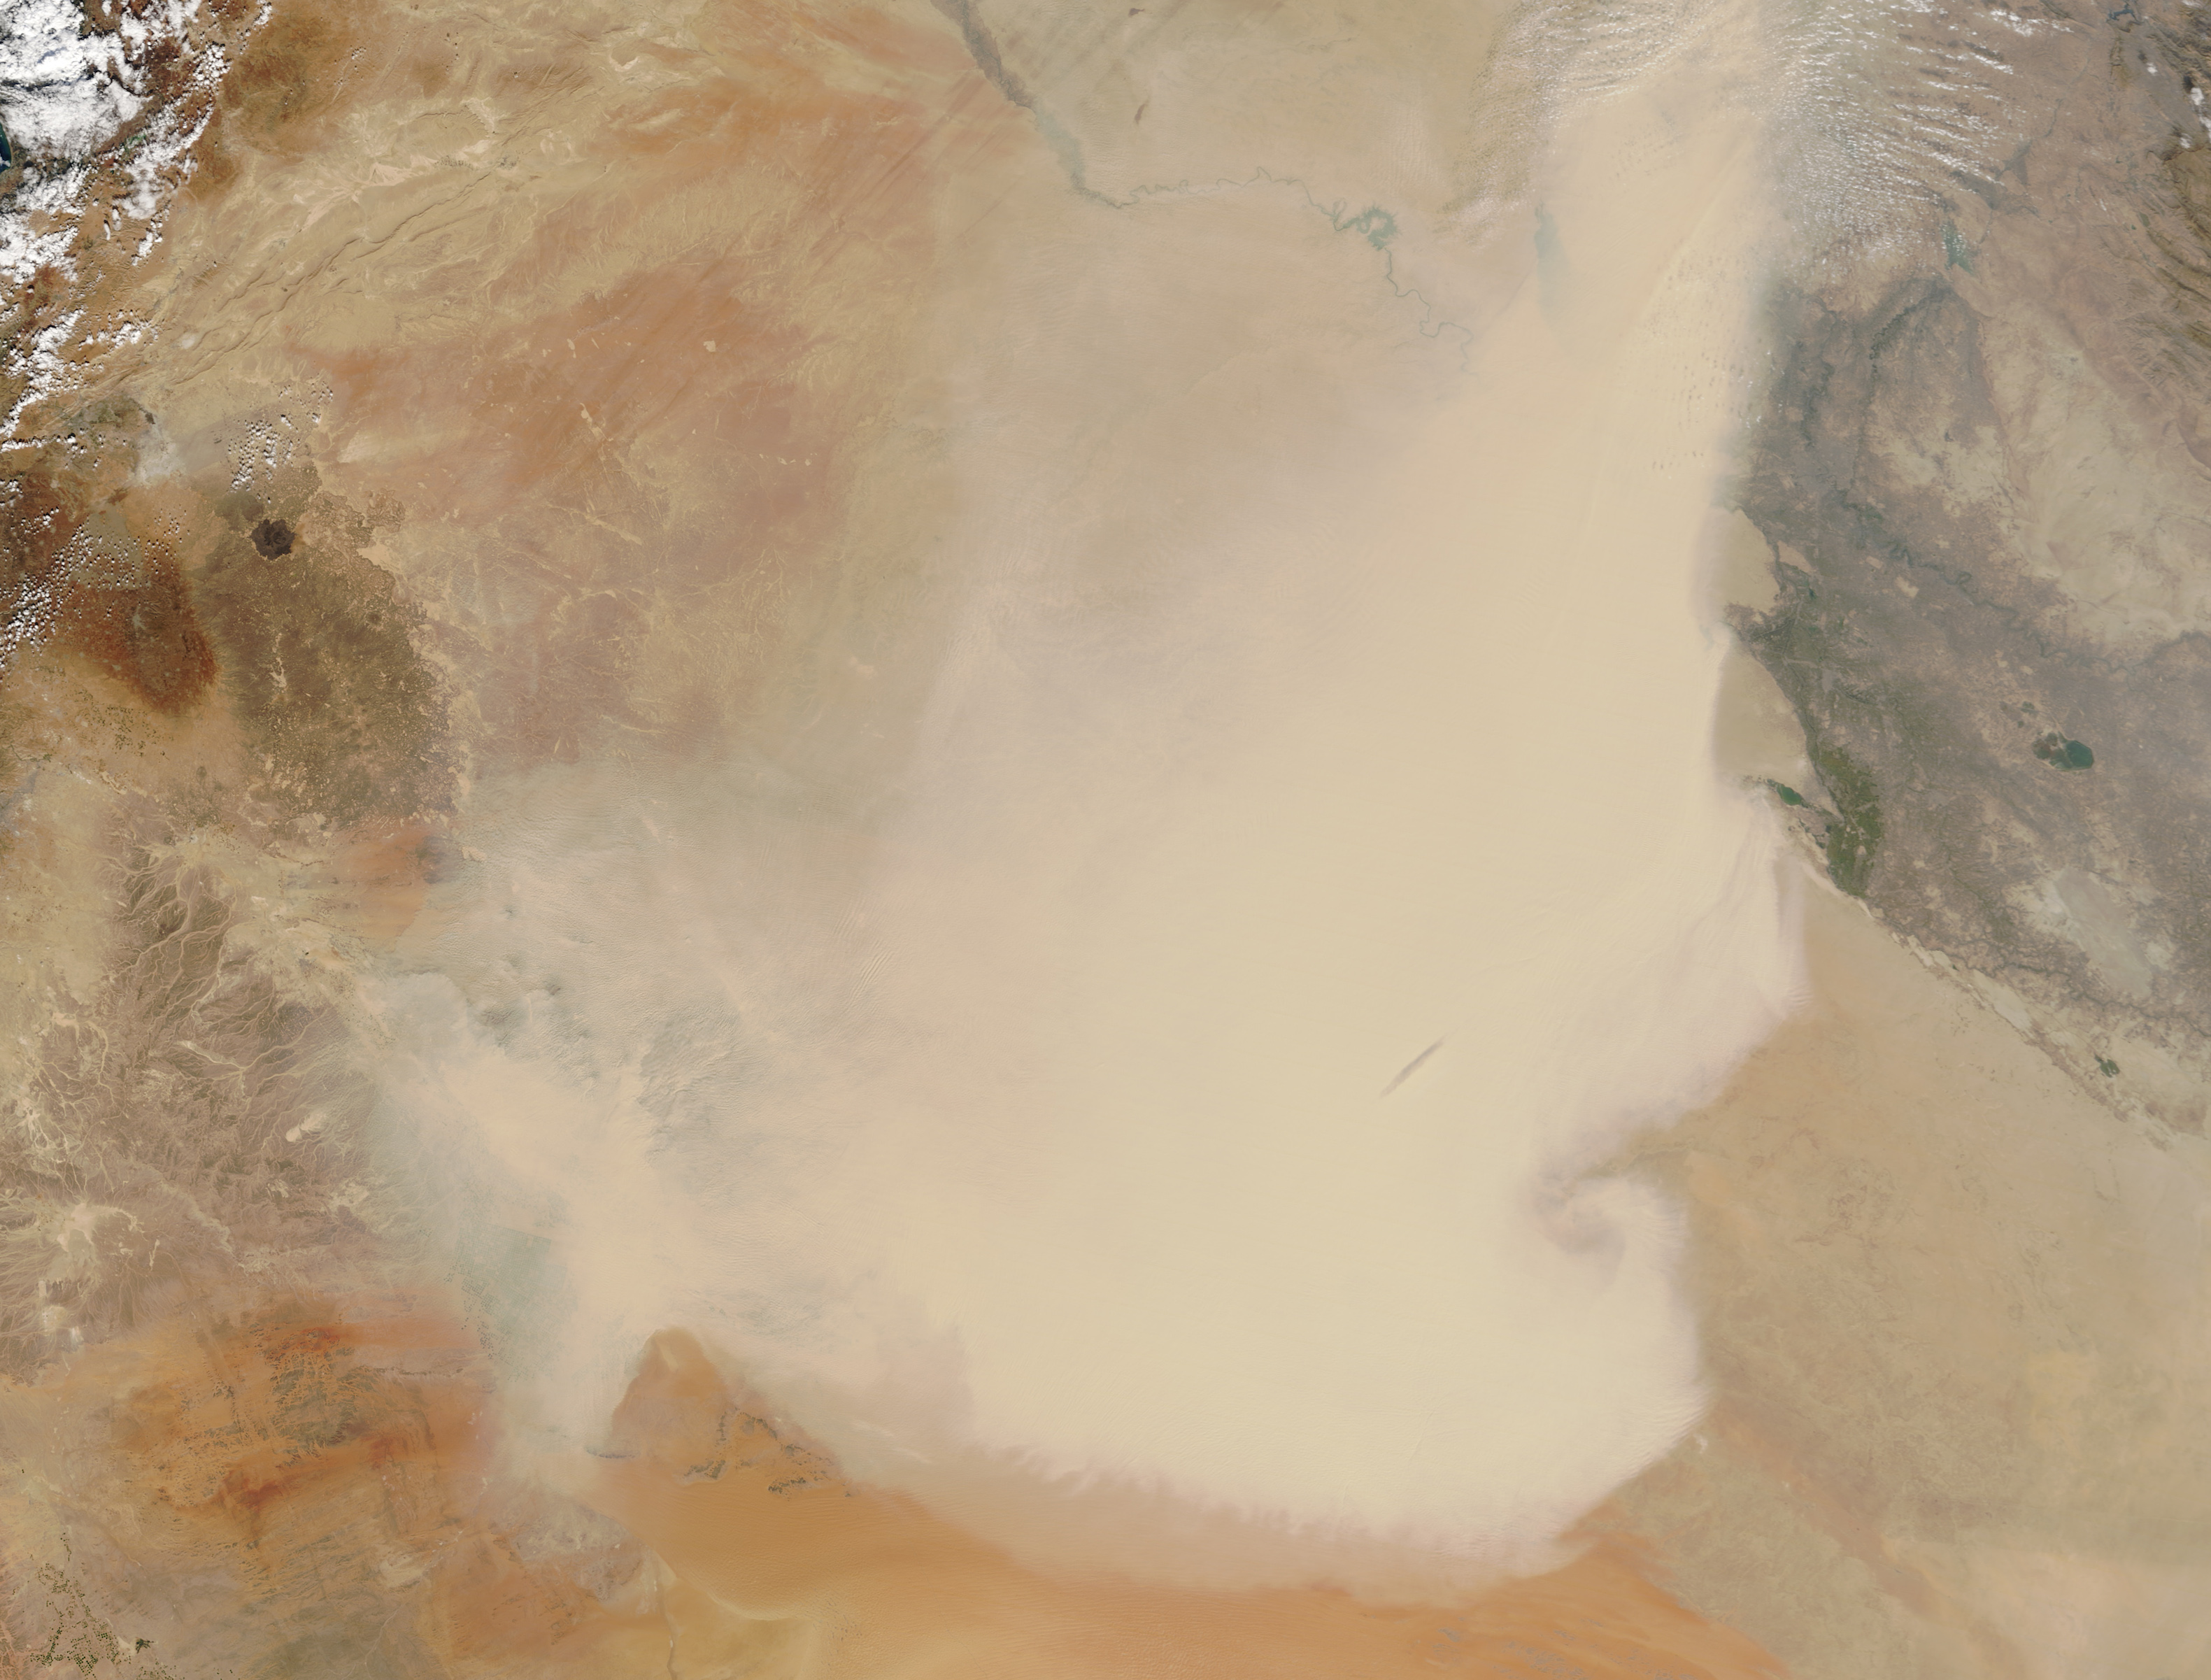 Today's Image of the Day comes courtesy of the NASA Earth Observatory and features a look at a recent dust storm over the Middle East.